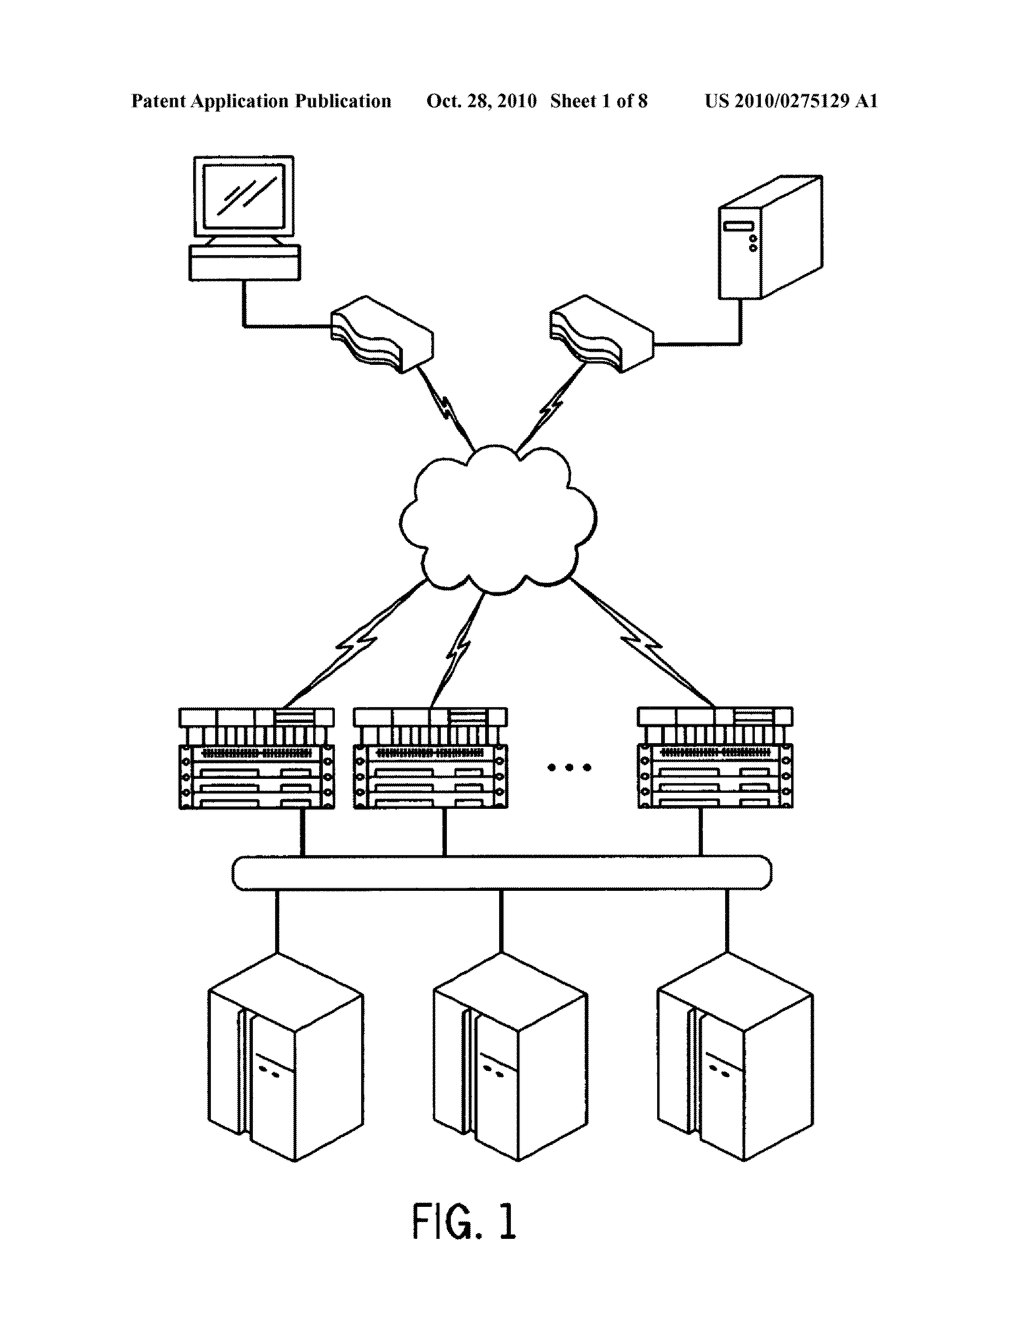 Computer Network Drawing At Free For Personal Use Diagram Software 1024x1320 Schematic